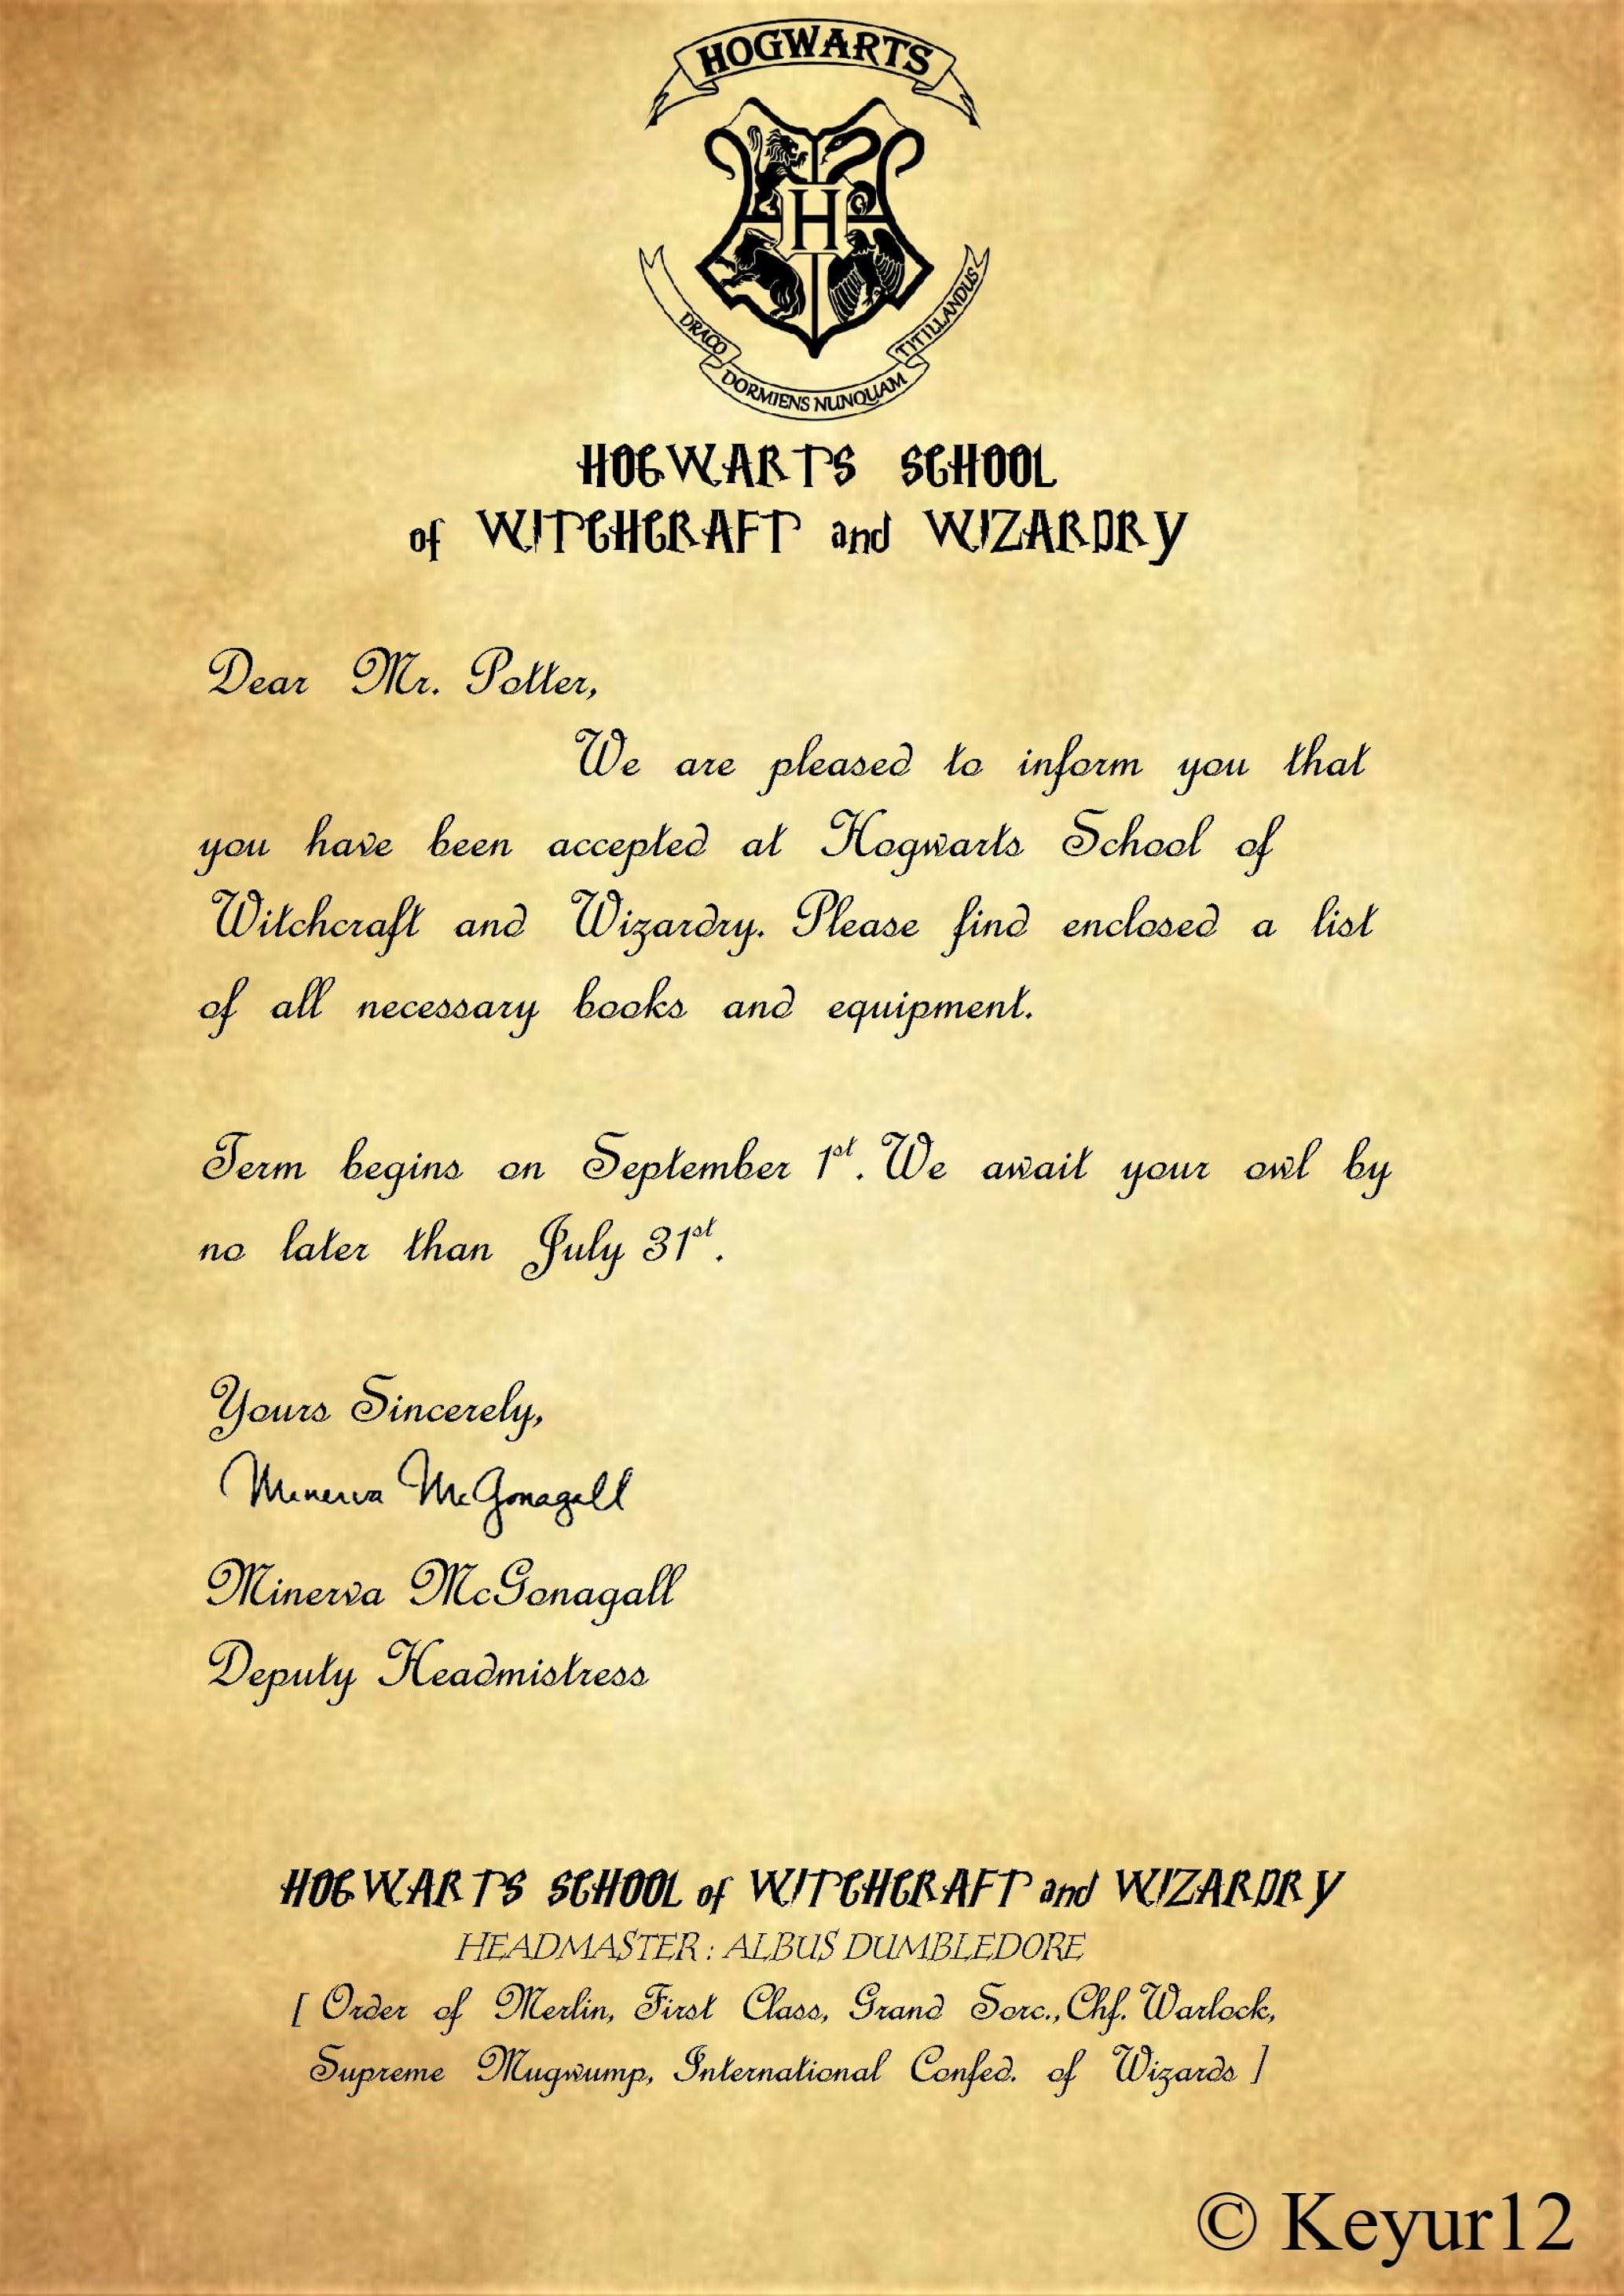 Make a custom harry potter hogwarts acceptance letter by Keyur12